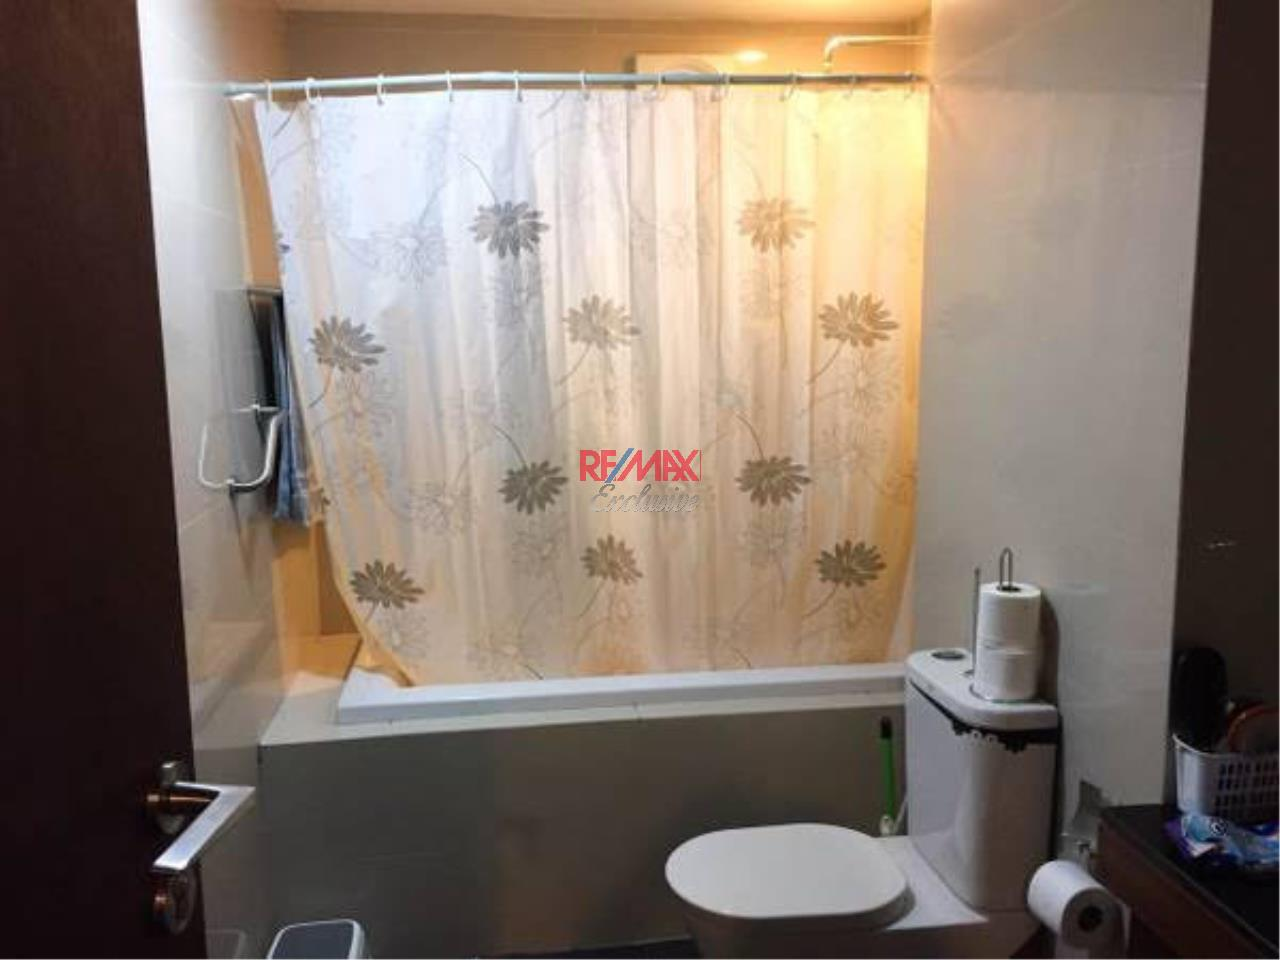 RE/MAX Exclusive Agency's Baan Saran 1 Bedroom Big Size for sale Good Price 4200000 THB 3